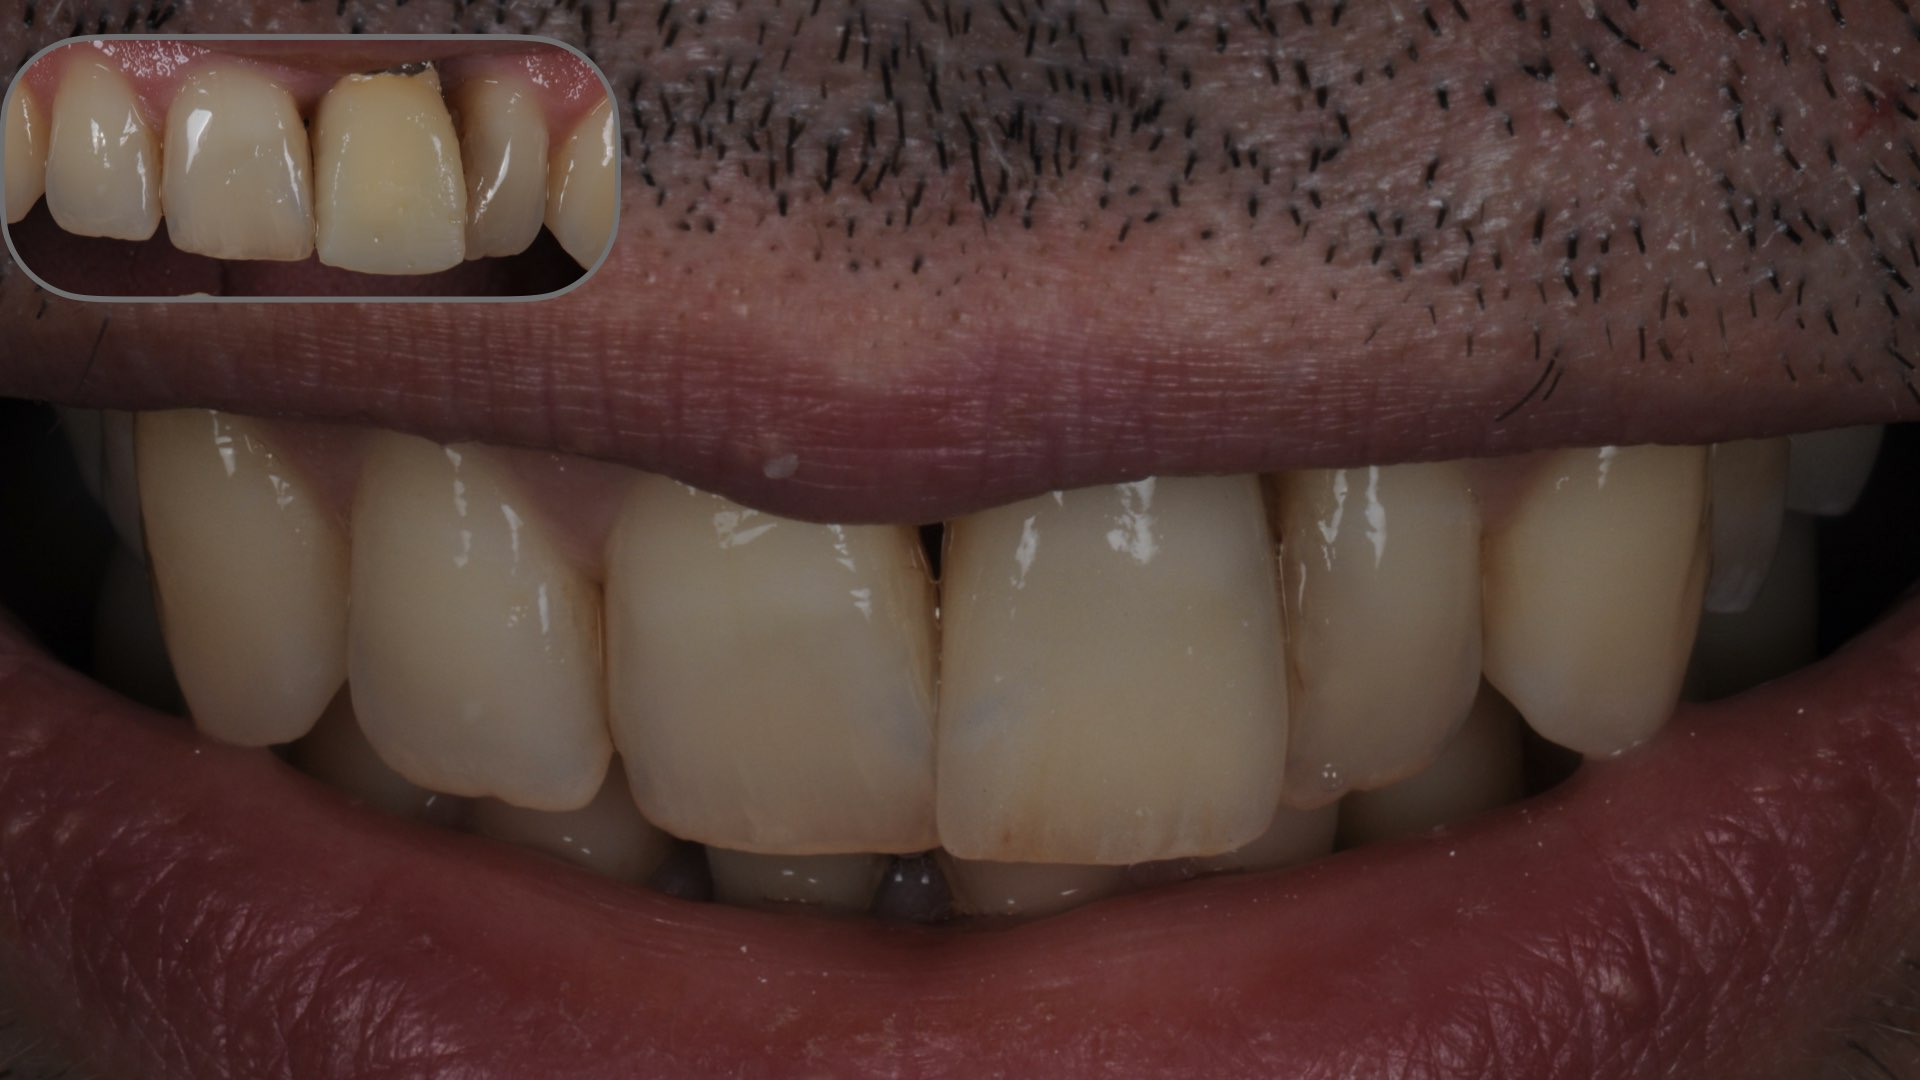 Clinical case 3:  Improved aesthetics with a zirconia layered restoration